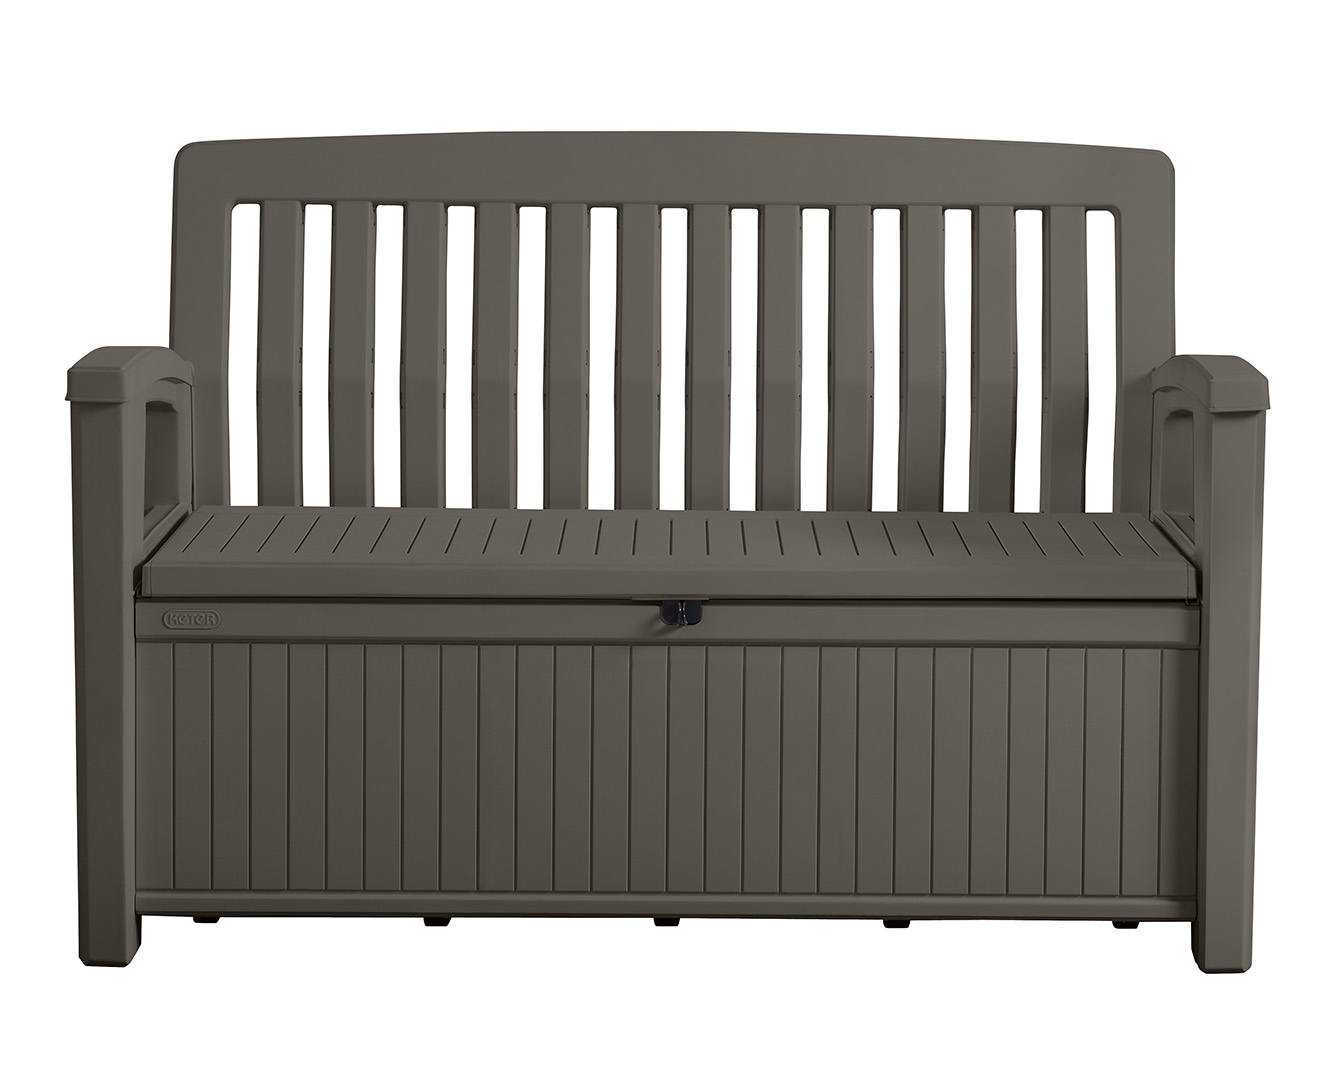 Keter Patio 227l Storage Bench Taupe Great Daily Deals At Australia 39 S Favourite Superstore